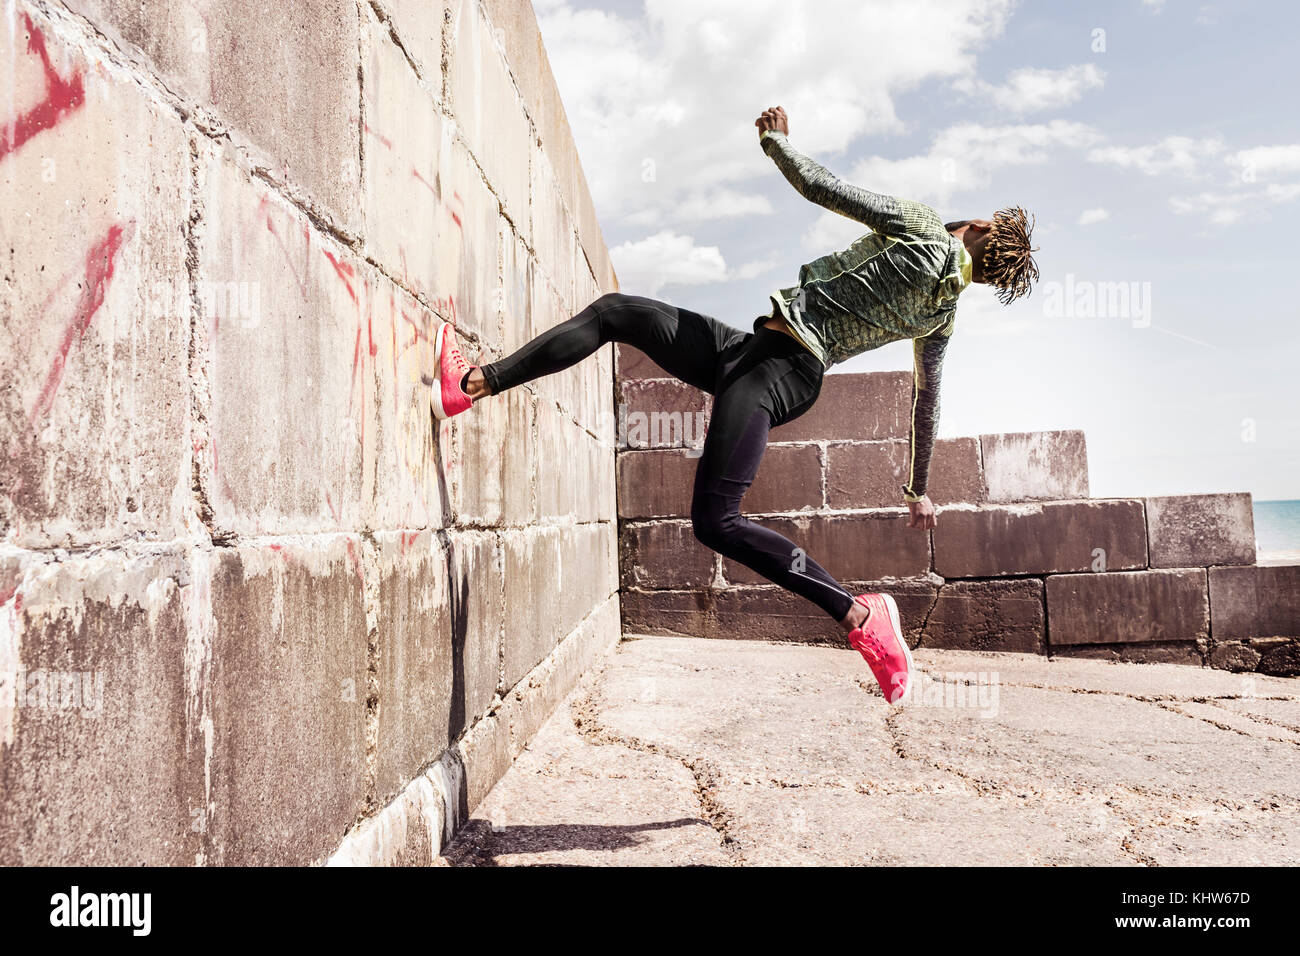 Young man, free running, outdoors, running up side of wall - Stock Image